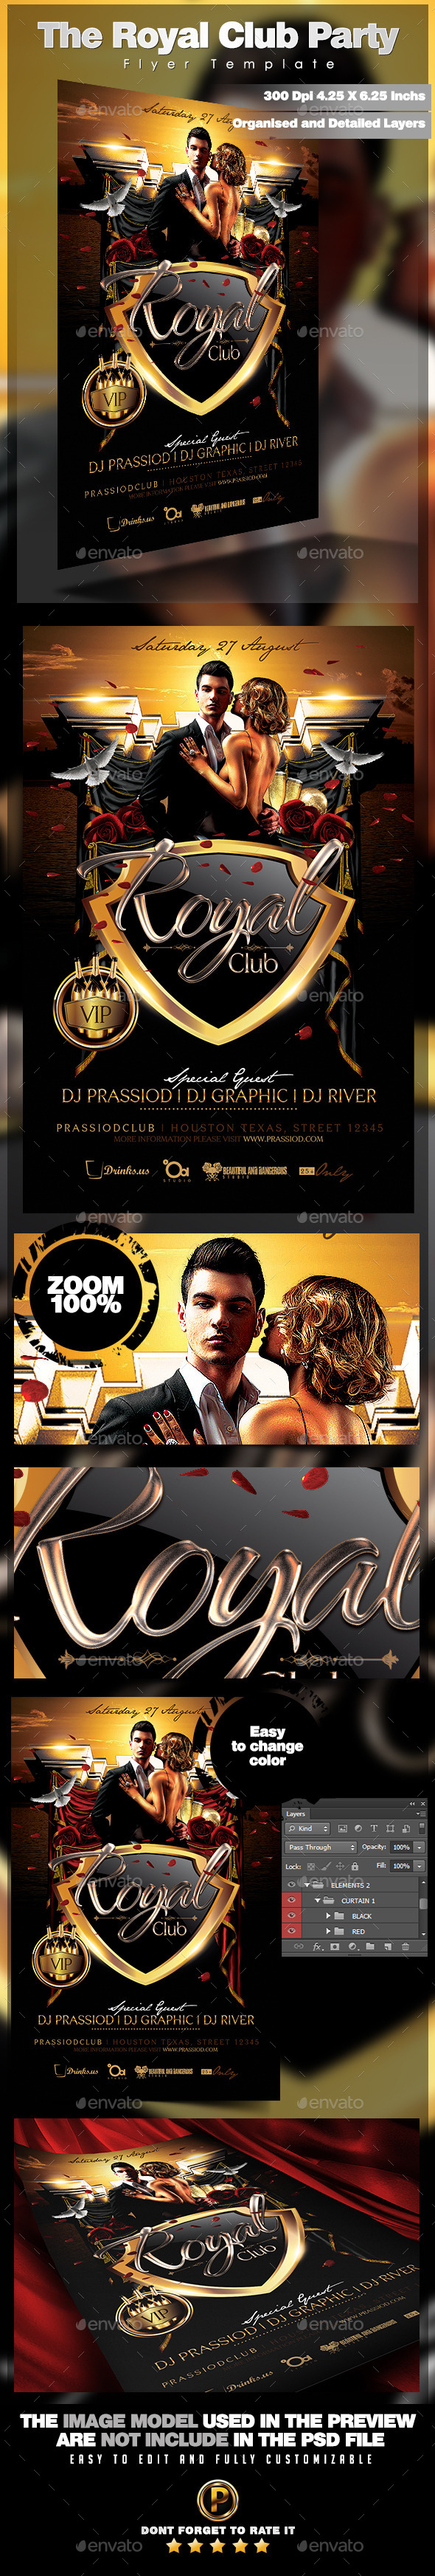 The Royal Club Party Flyer Template - Clubs & Parties Events